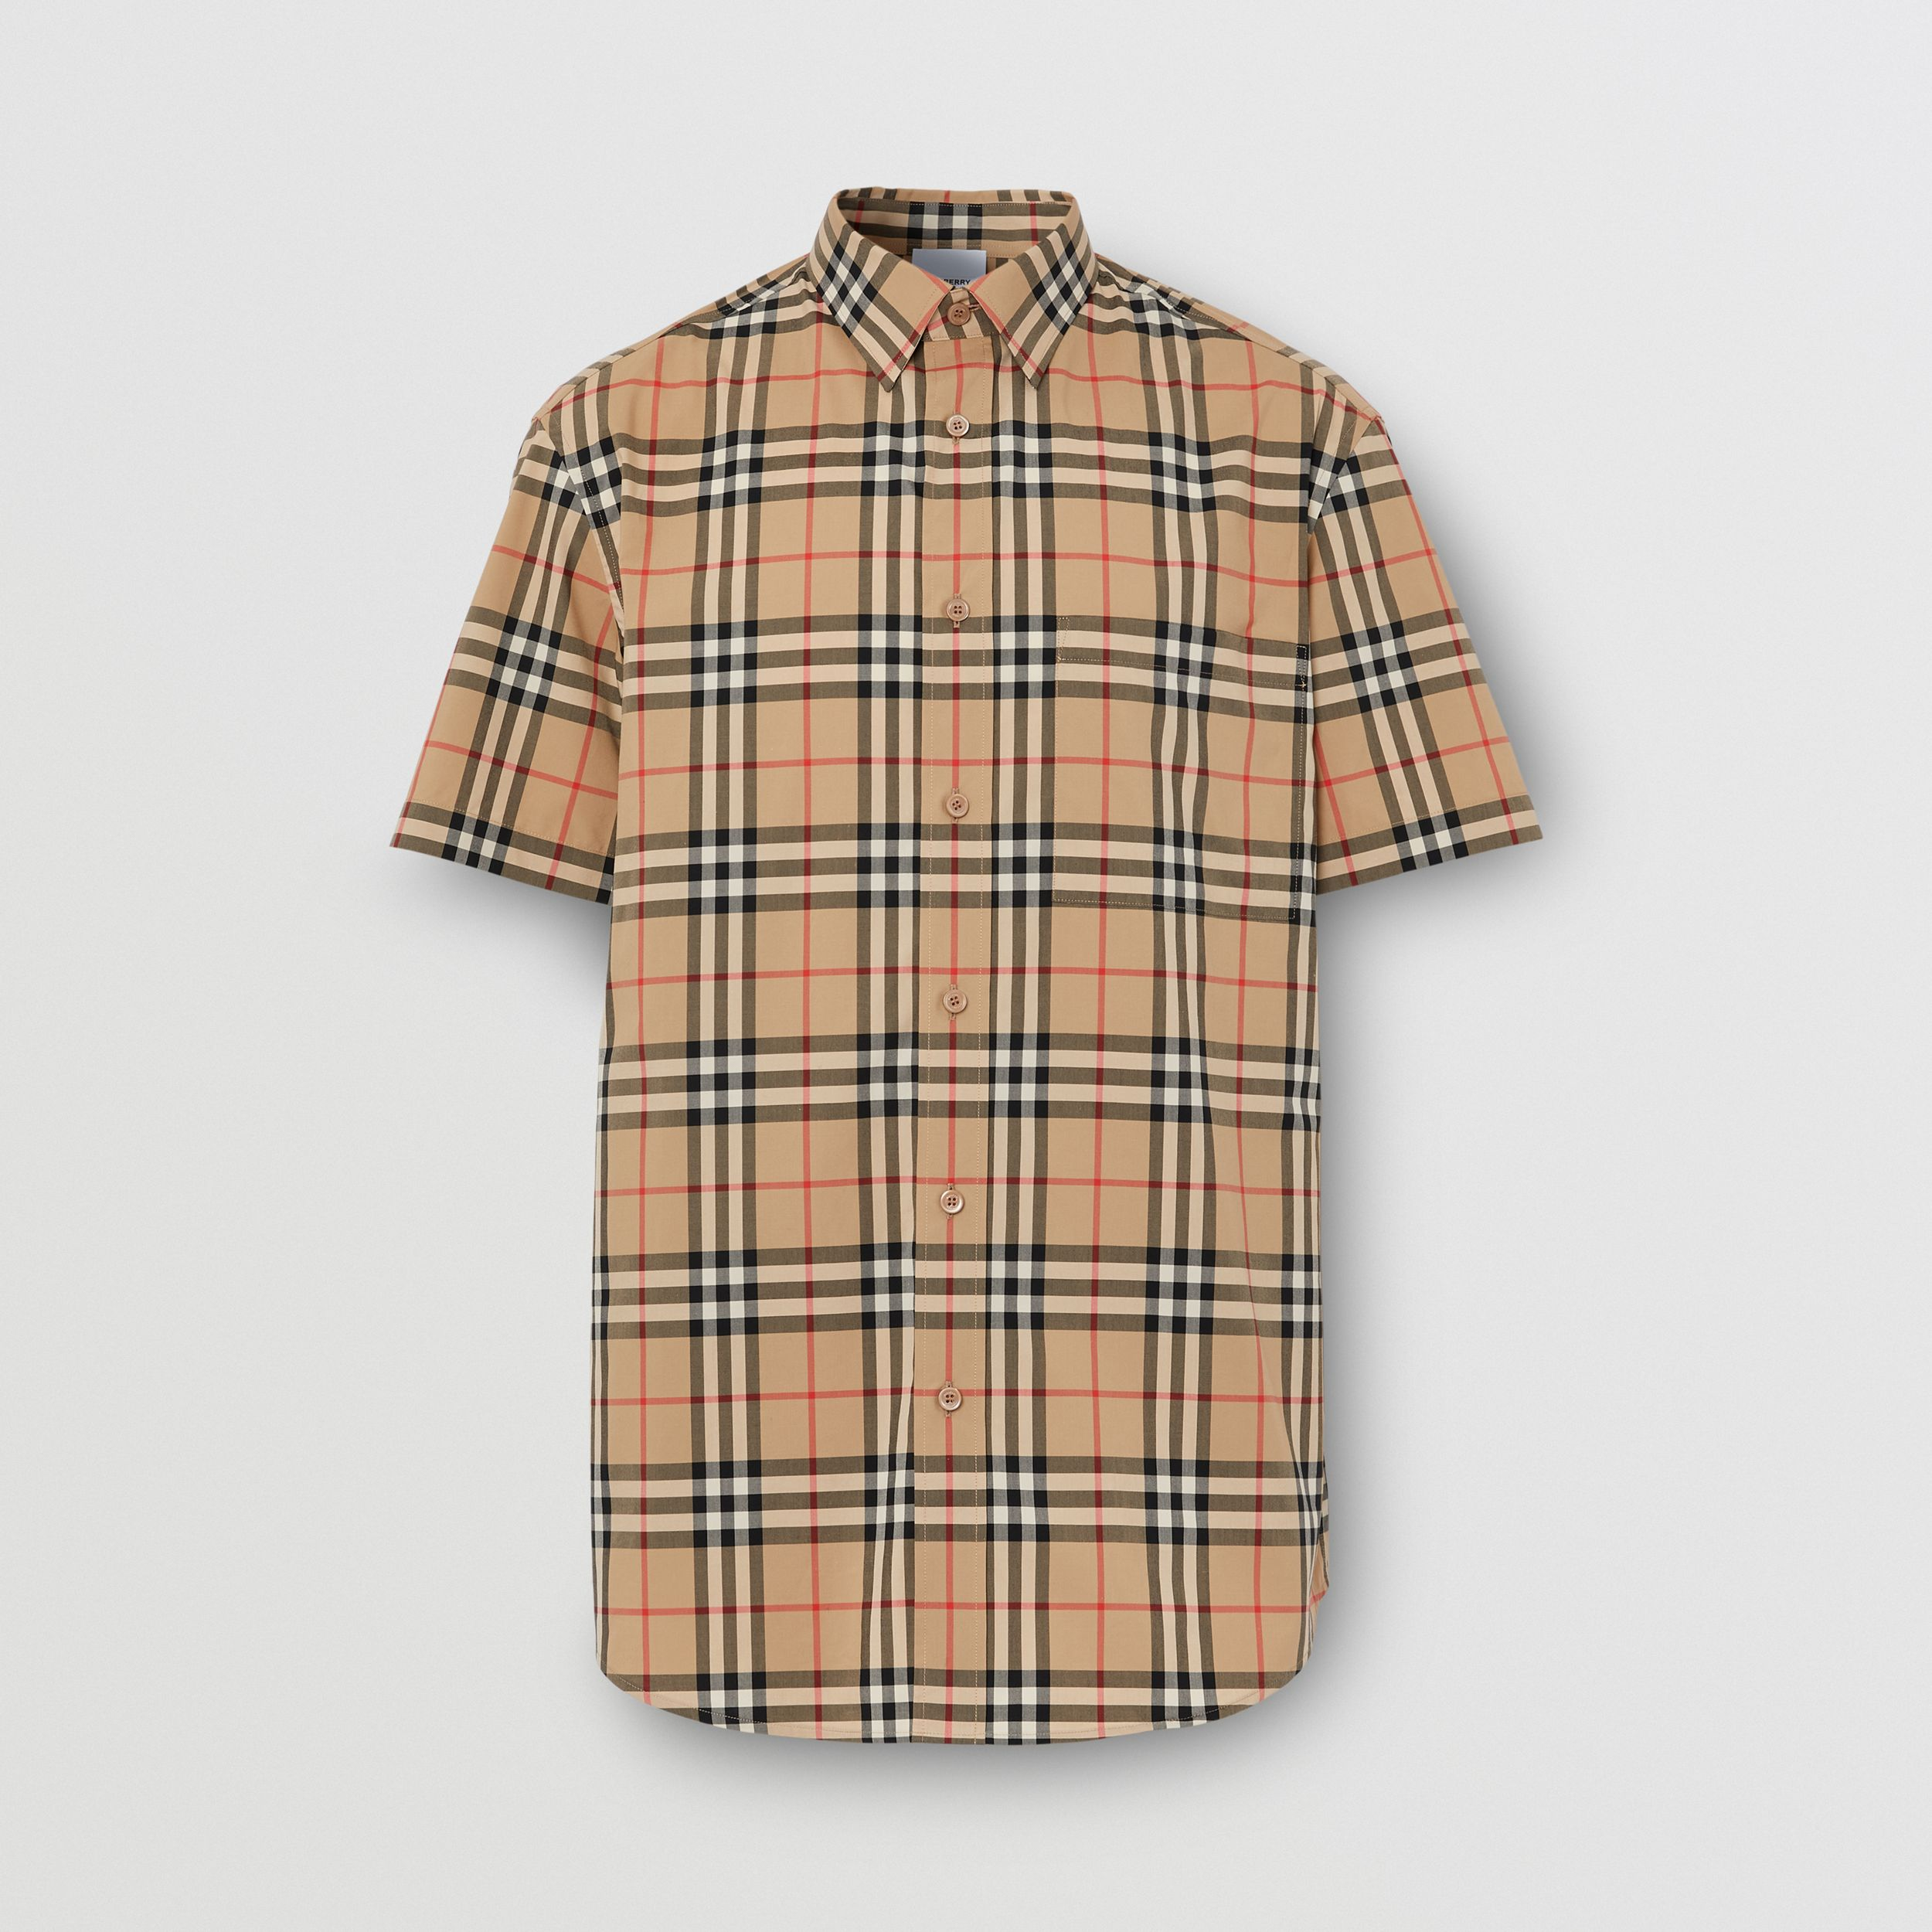 Short-sleeve Logo Appliqué Vintage Check Shirt in Archive Beige - Men | Burberry - 4